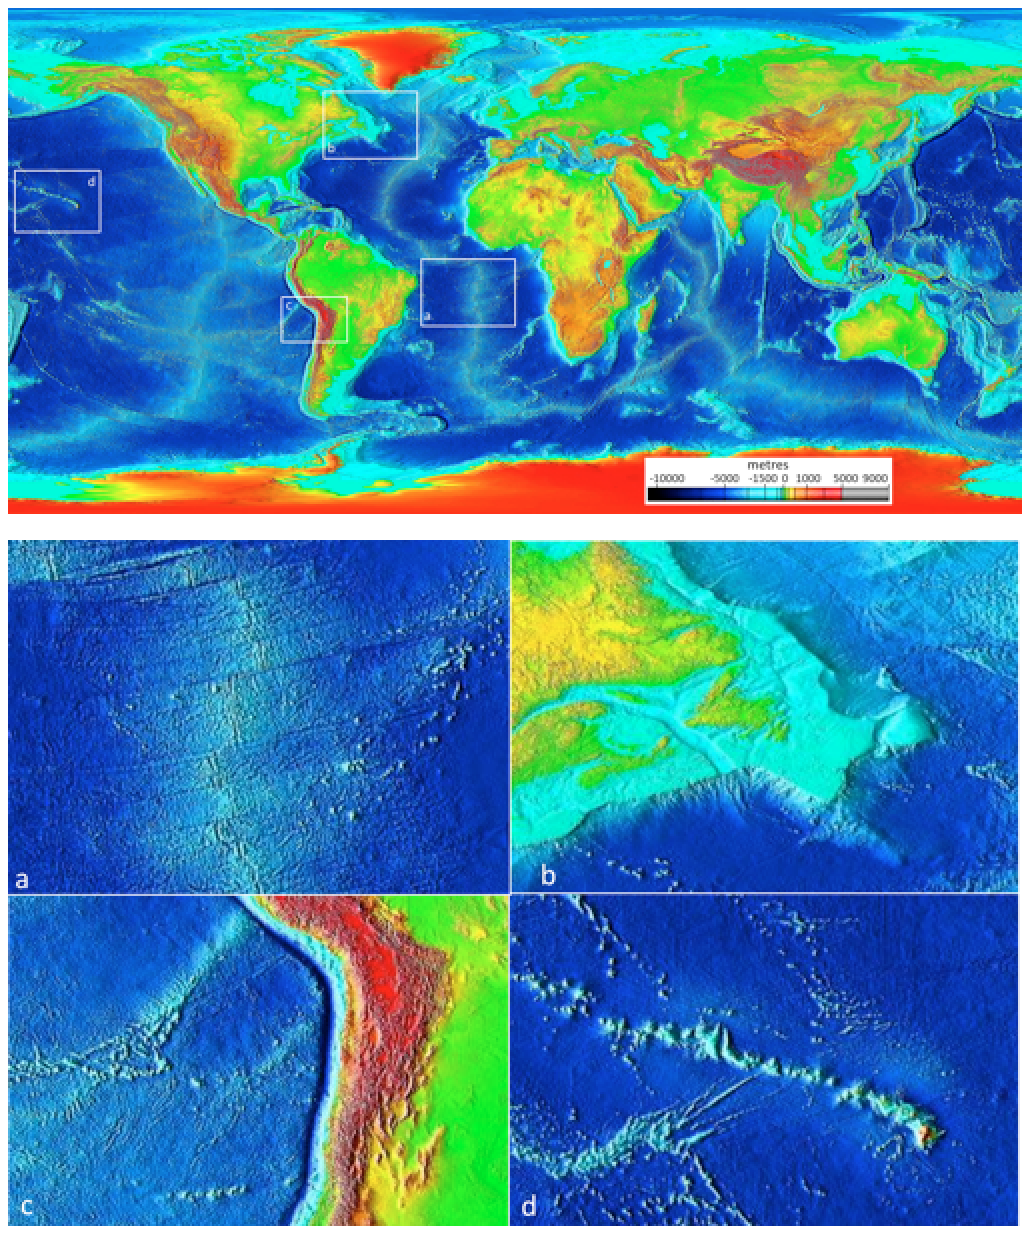 igure 4.9 Ocean floor bathymetry (and continental topography). Inset (a): the mid-Atlantic ridge, (b): the Newfoundland continental shelf, (c): the Nazca trench adjacent to South America, and (d): the Hawaiian Island chain. [SE after NOAA, http://bit.ly/1OtRMc0]